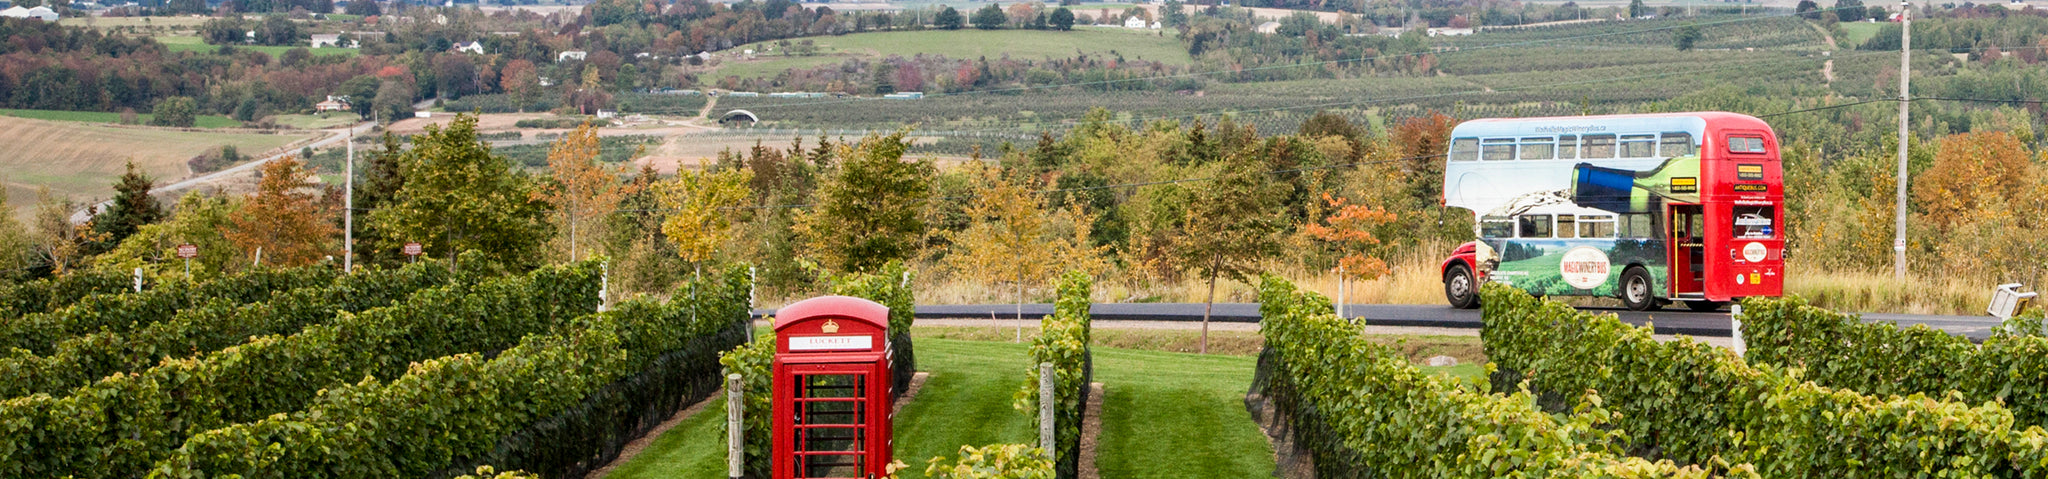 Photo of Magic Winery Bus driving through a vineyard with a red English phone booth in the foreground